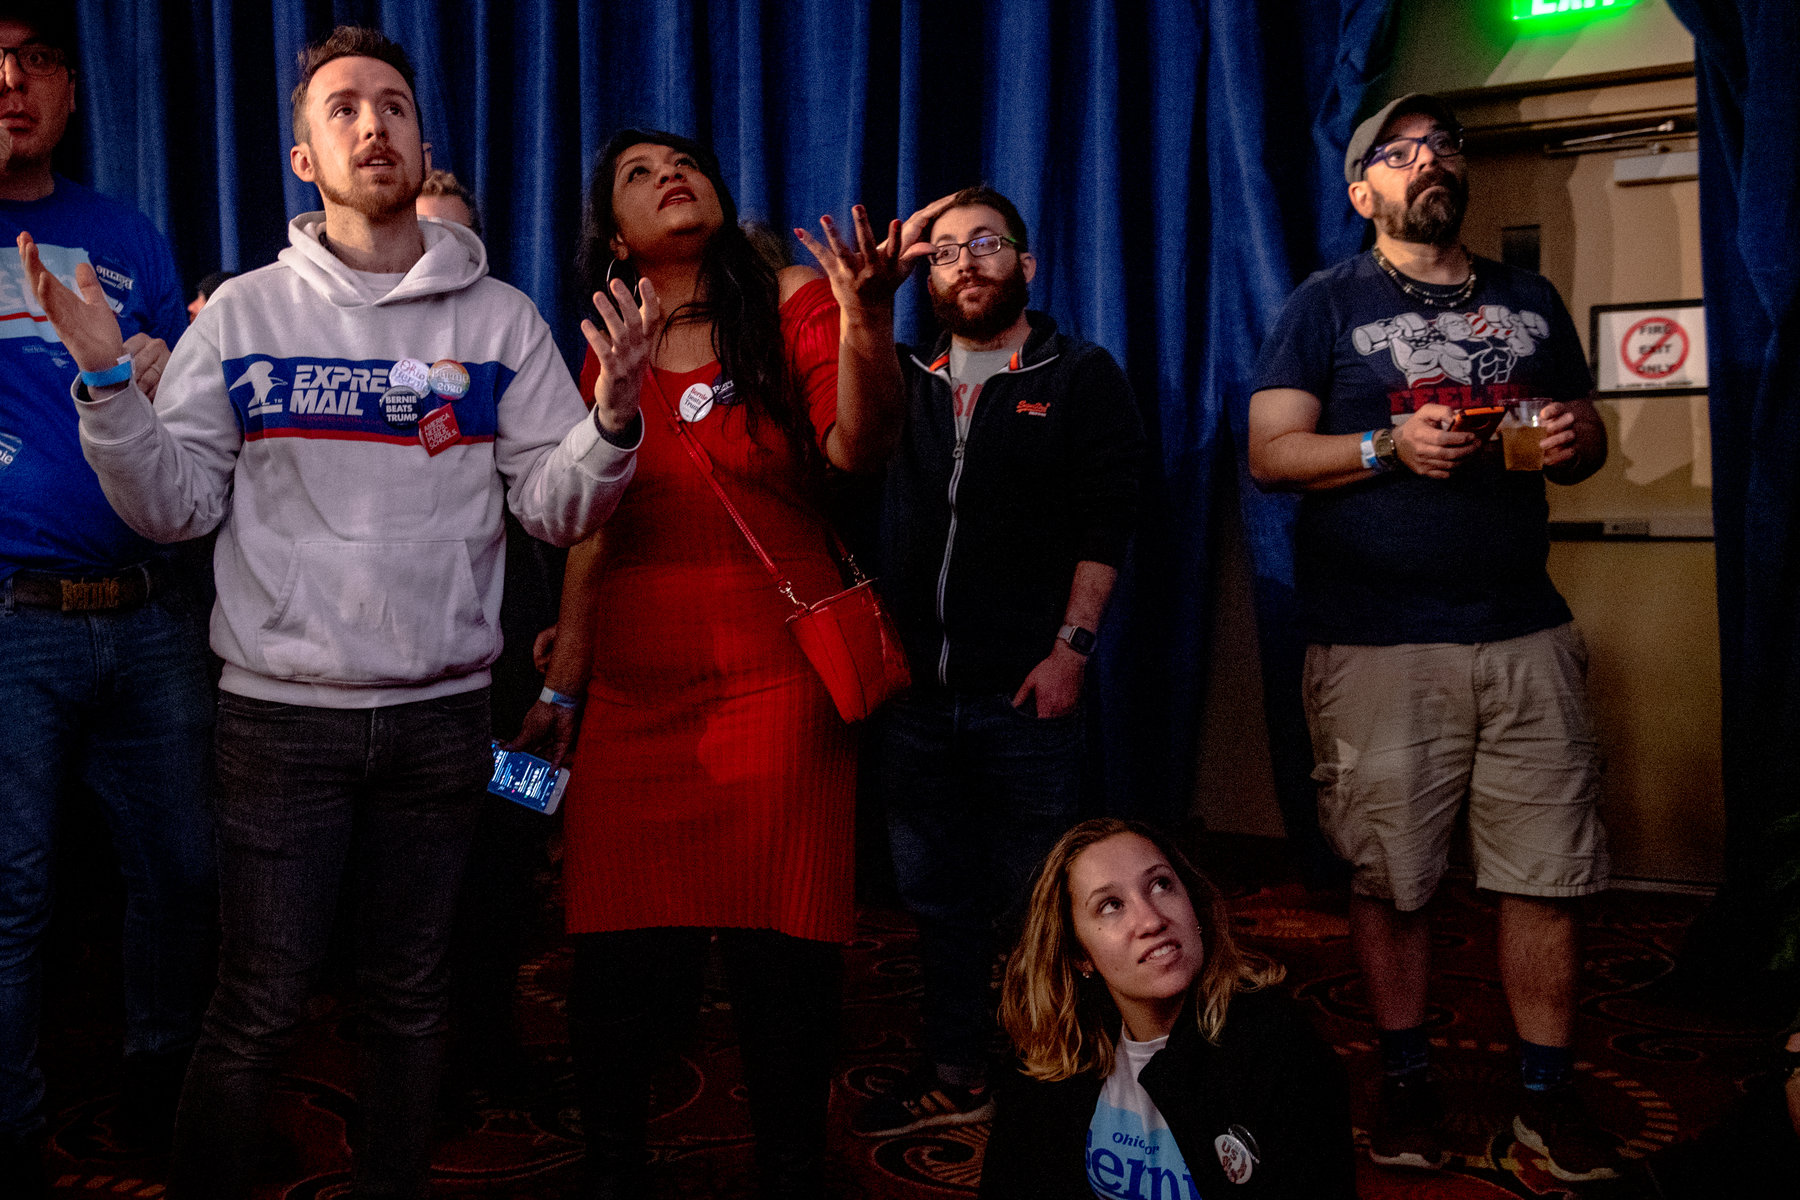 Sanders caucus party results in confusion